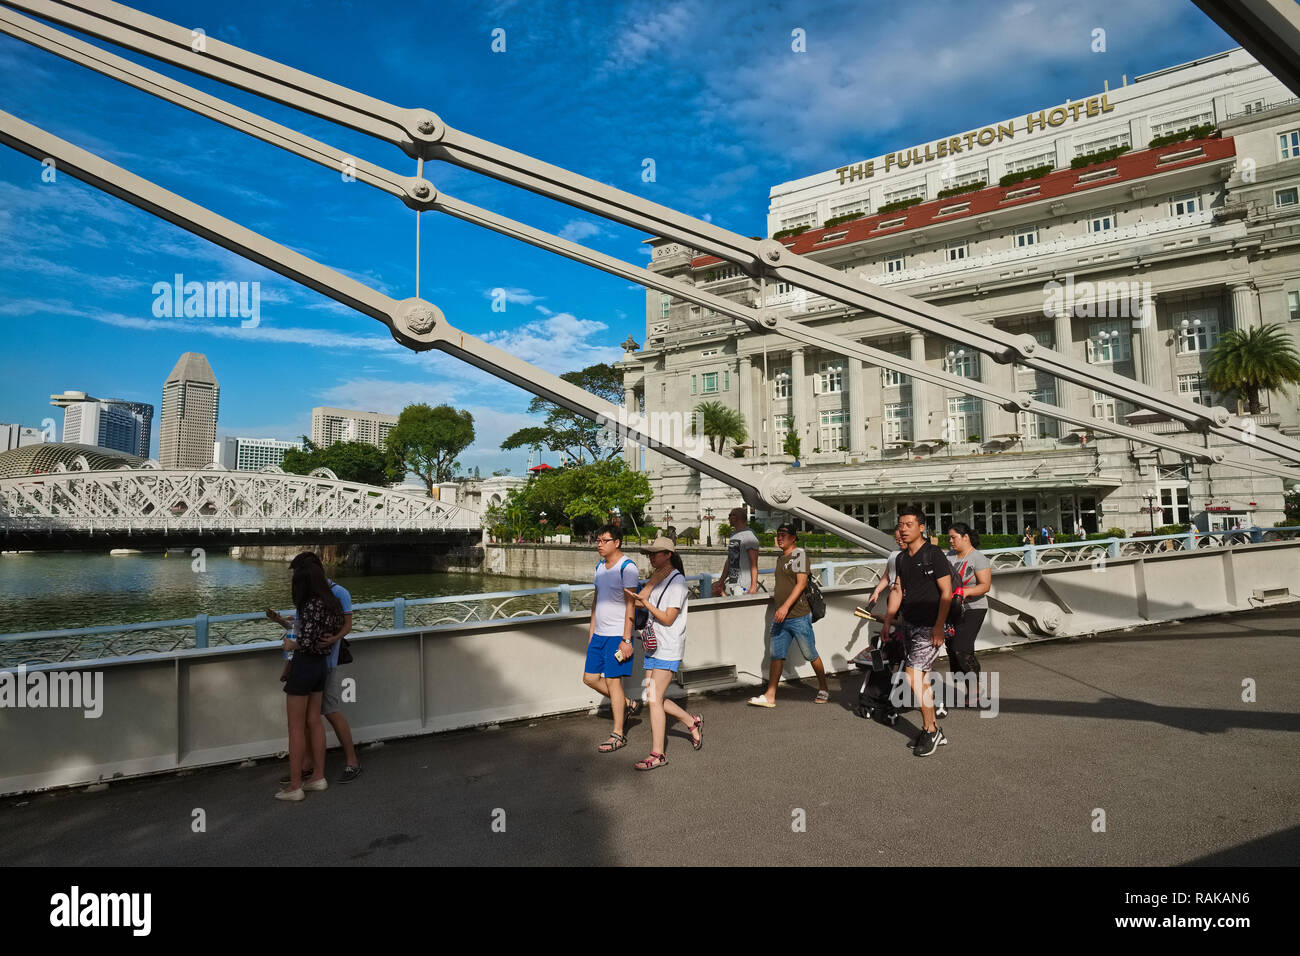 Tourists crossing Cavenagh Bridge spanning the Singapore River, Singapore, in the background Anderson Bridge (l) and Fullerton Hotel (r) - Stock Image